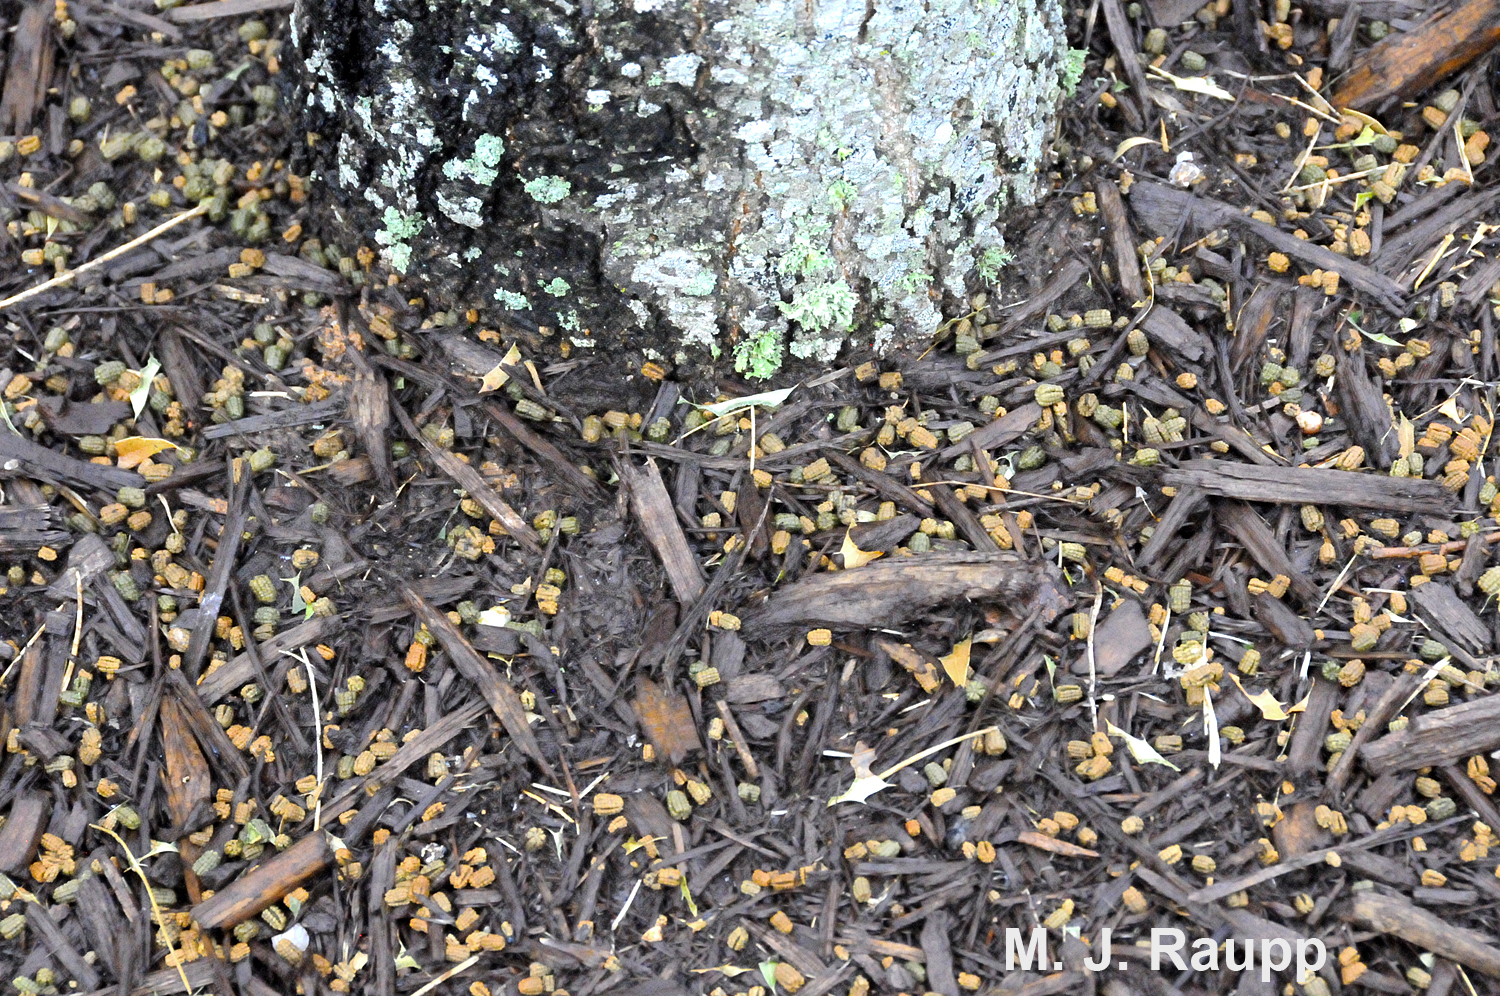 Thousands of frass pellets litter the ground beneath trees infested with oakworms.